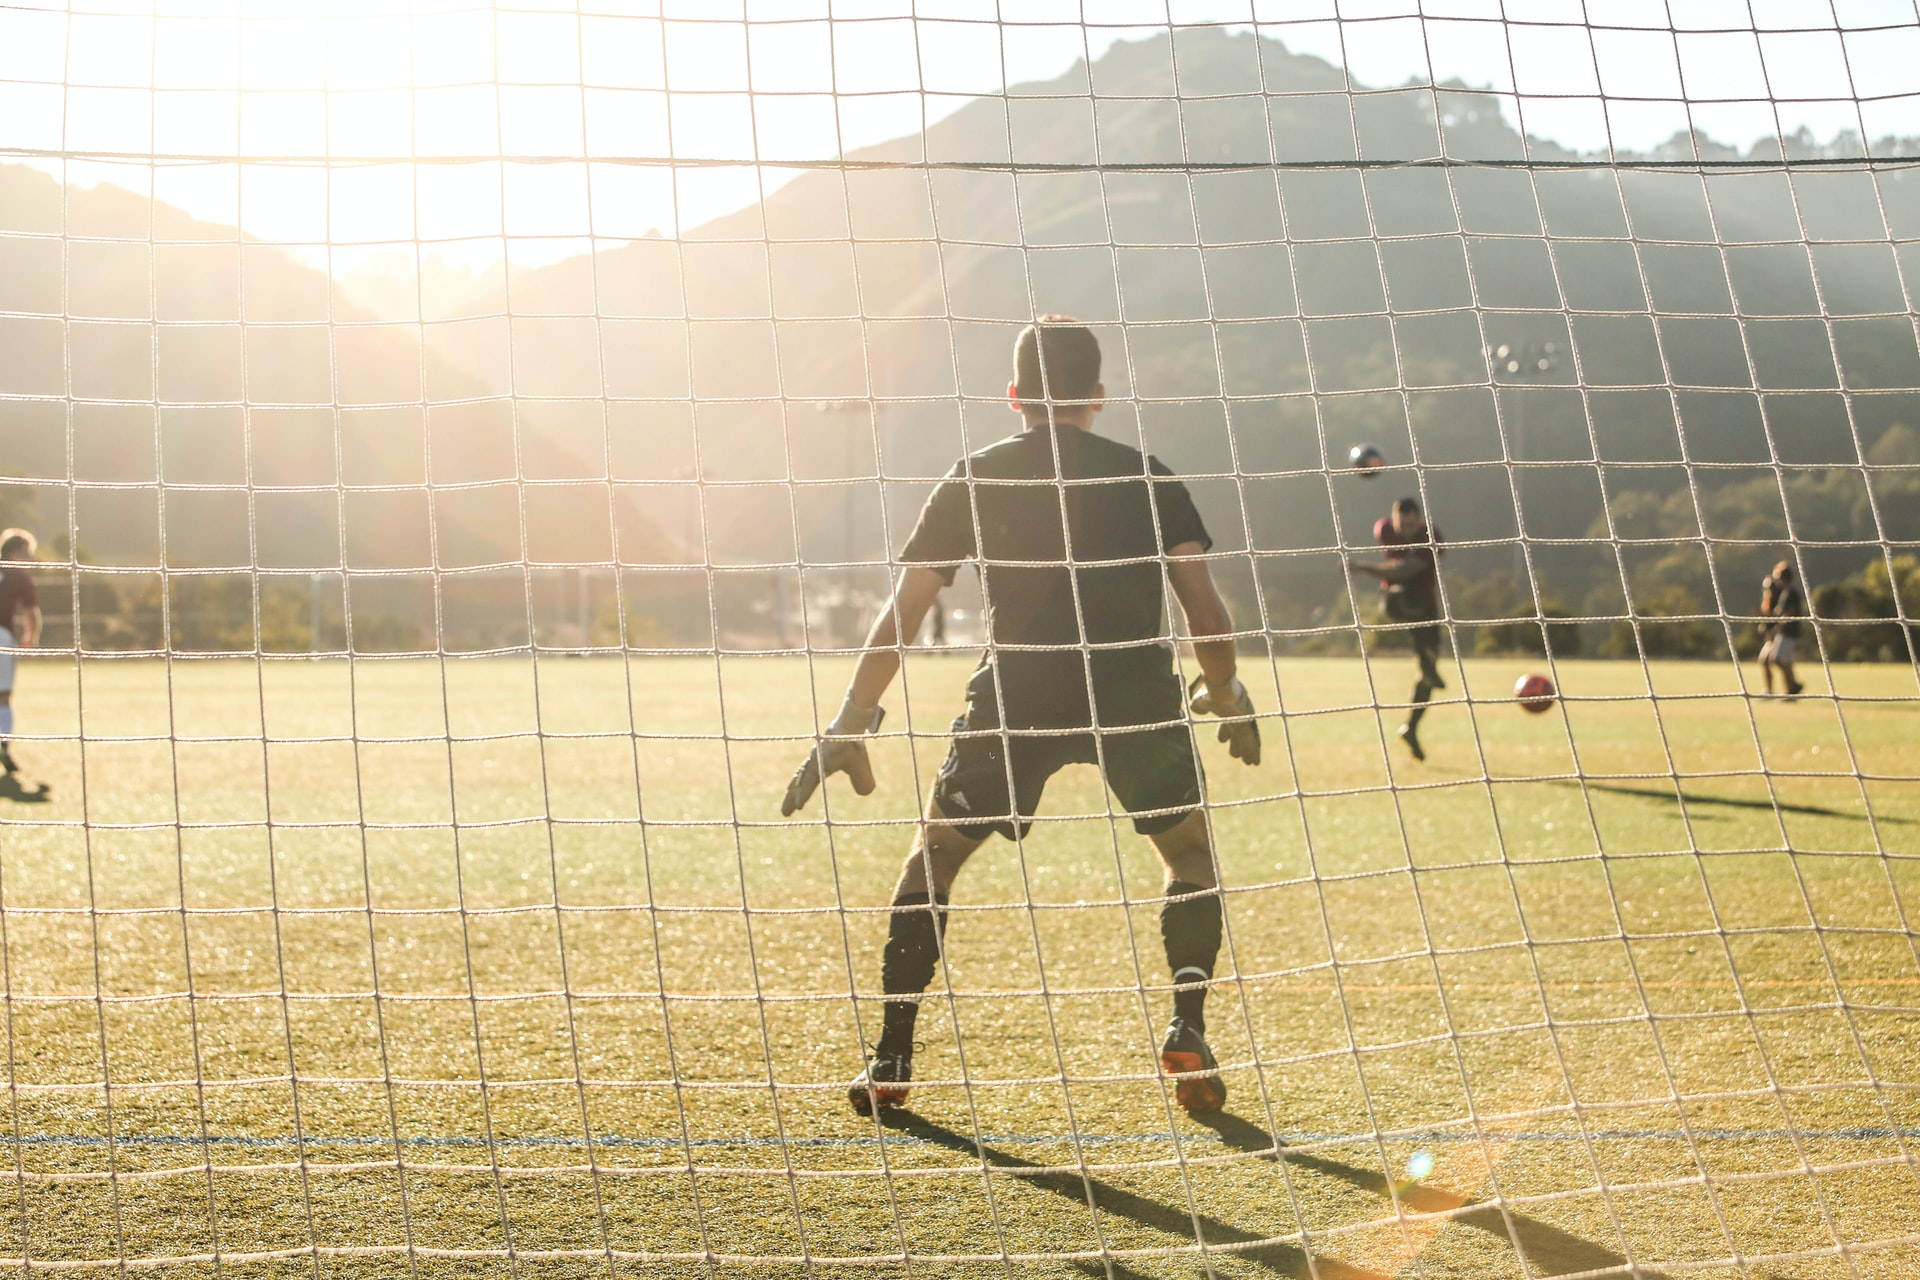 man playing football on a field